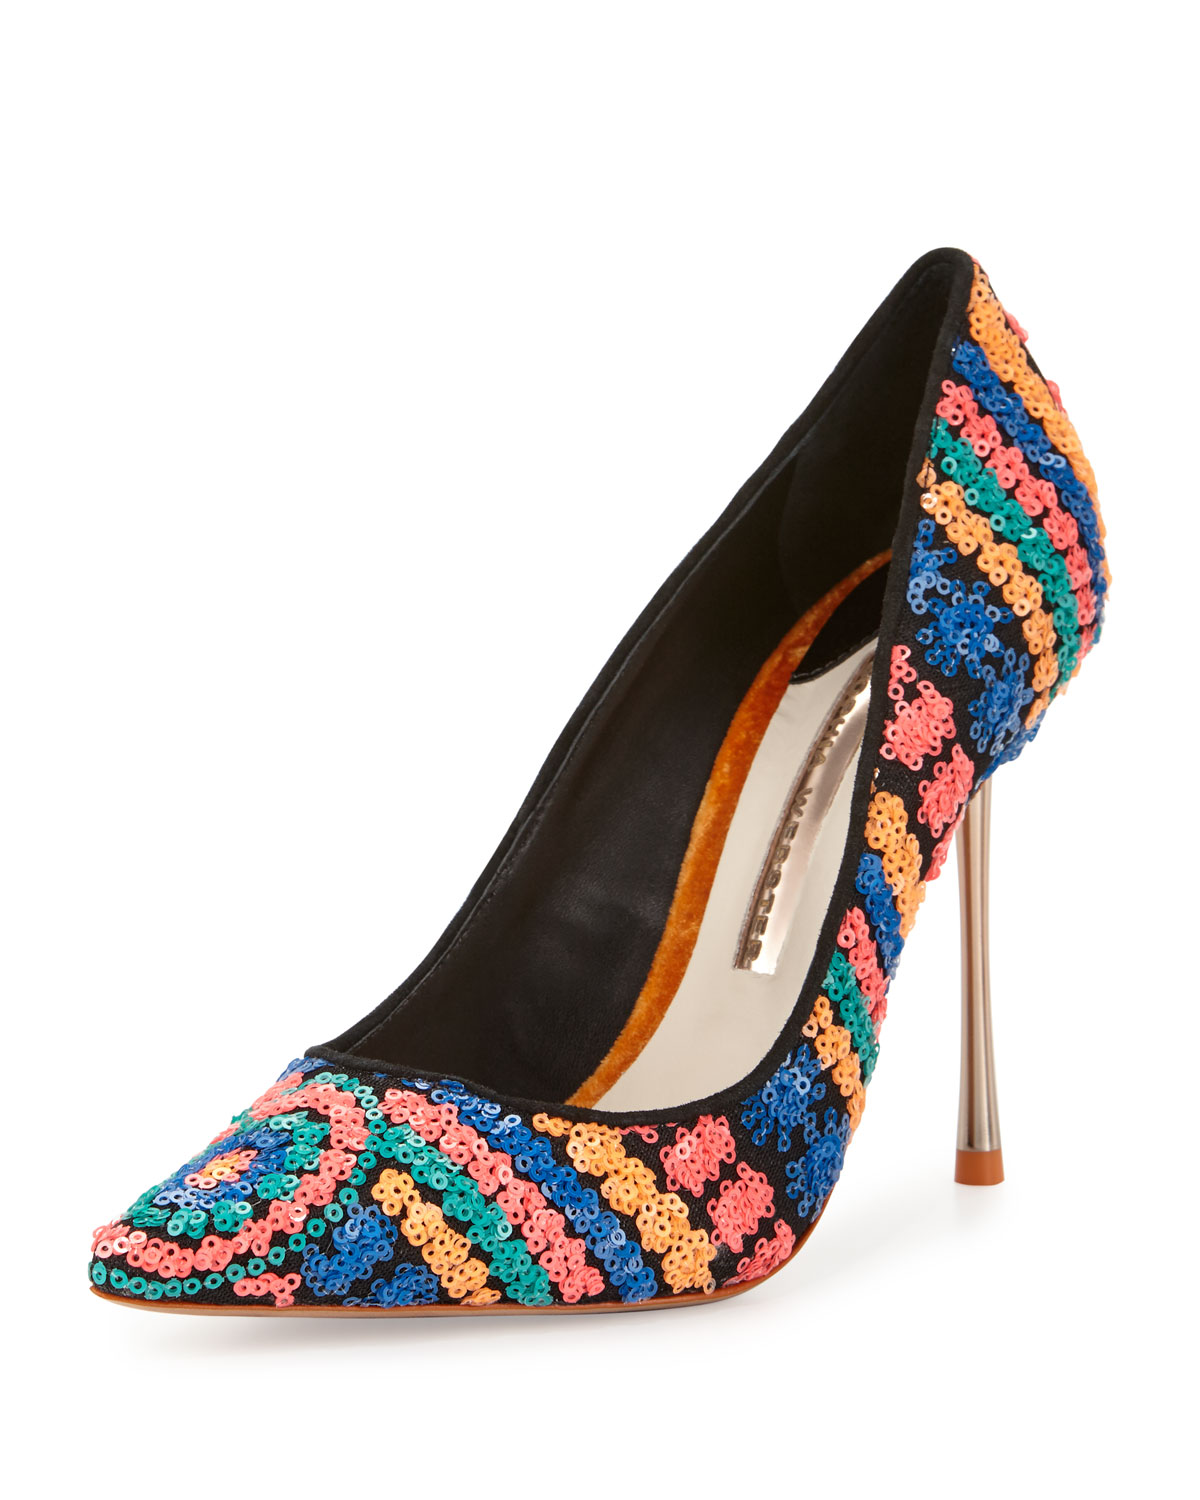 Coco Iridescent Sequin Pump, Multi